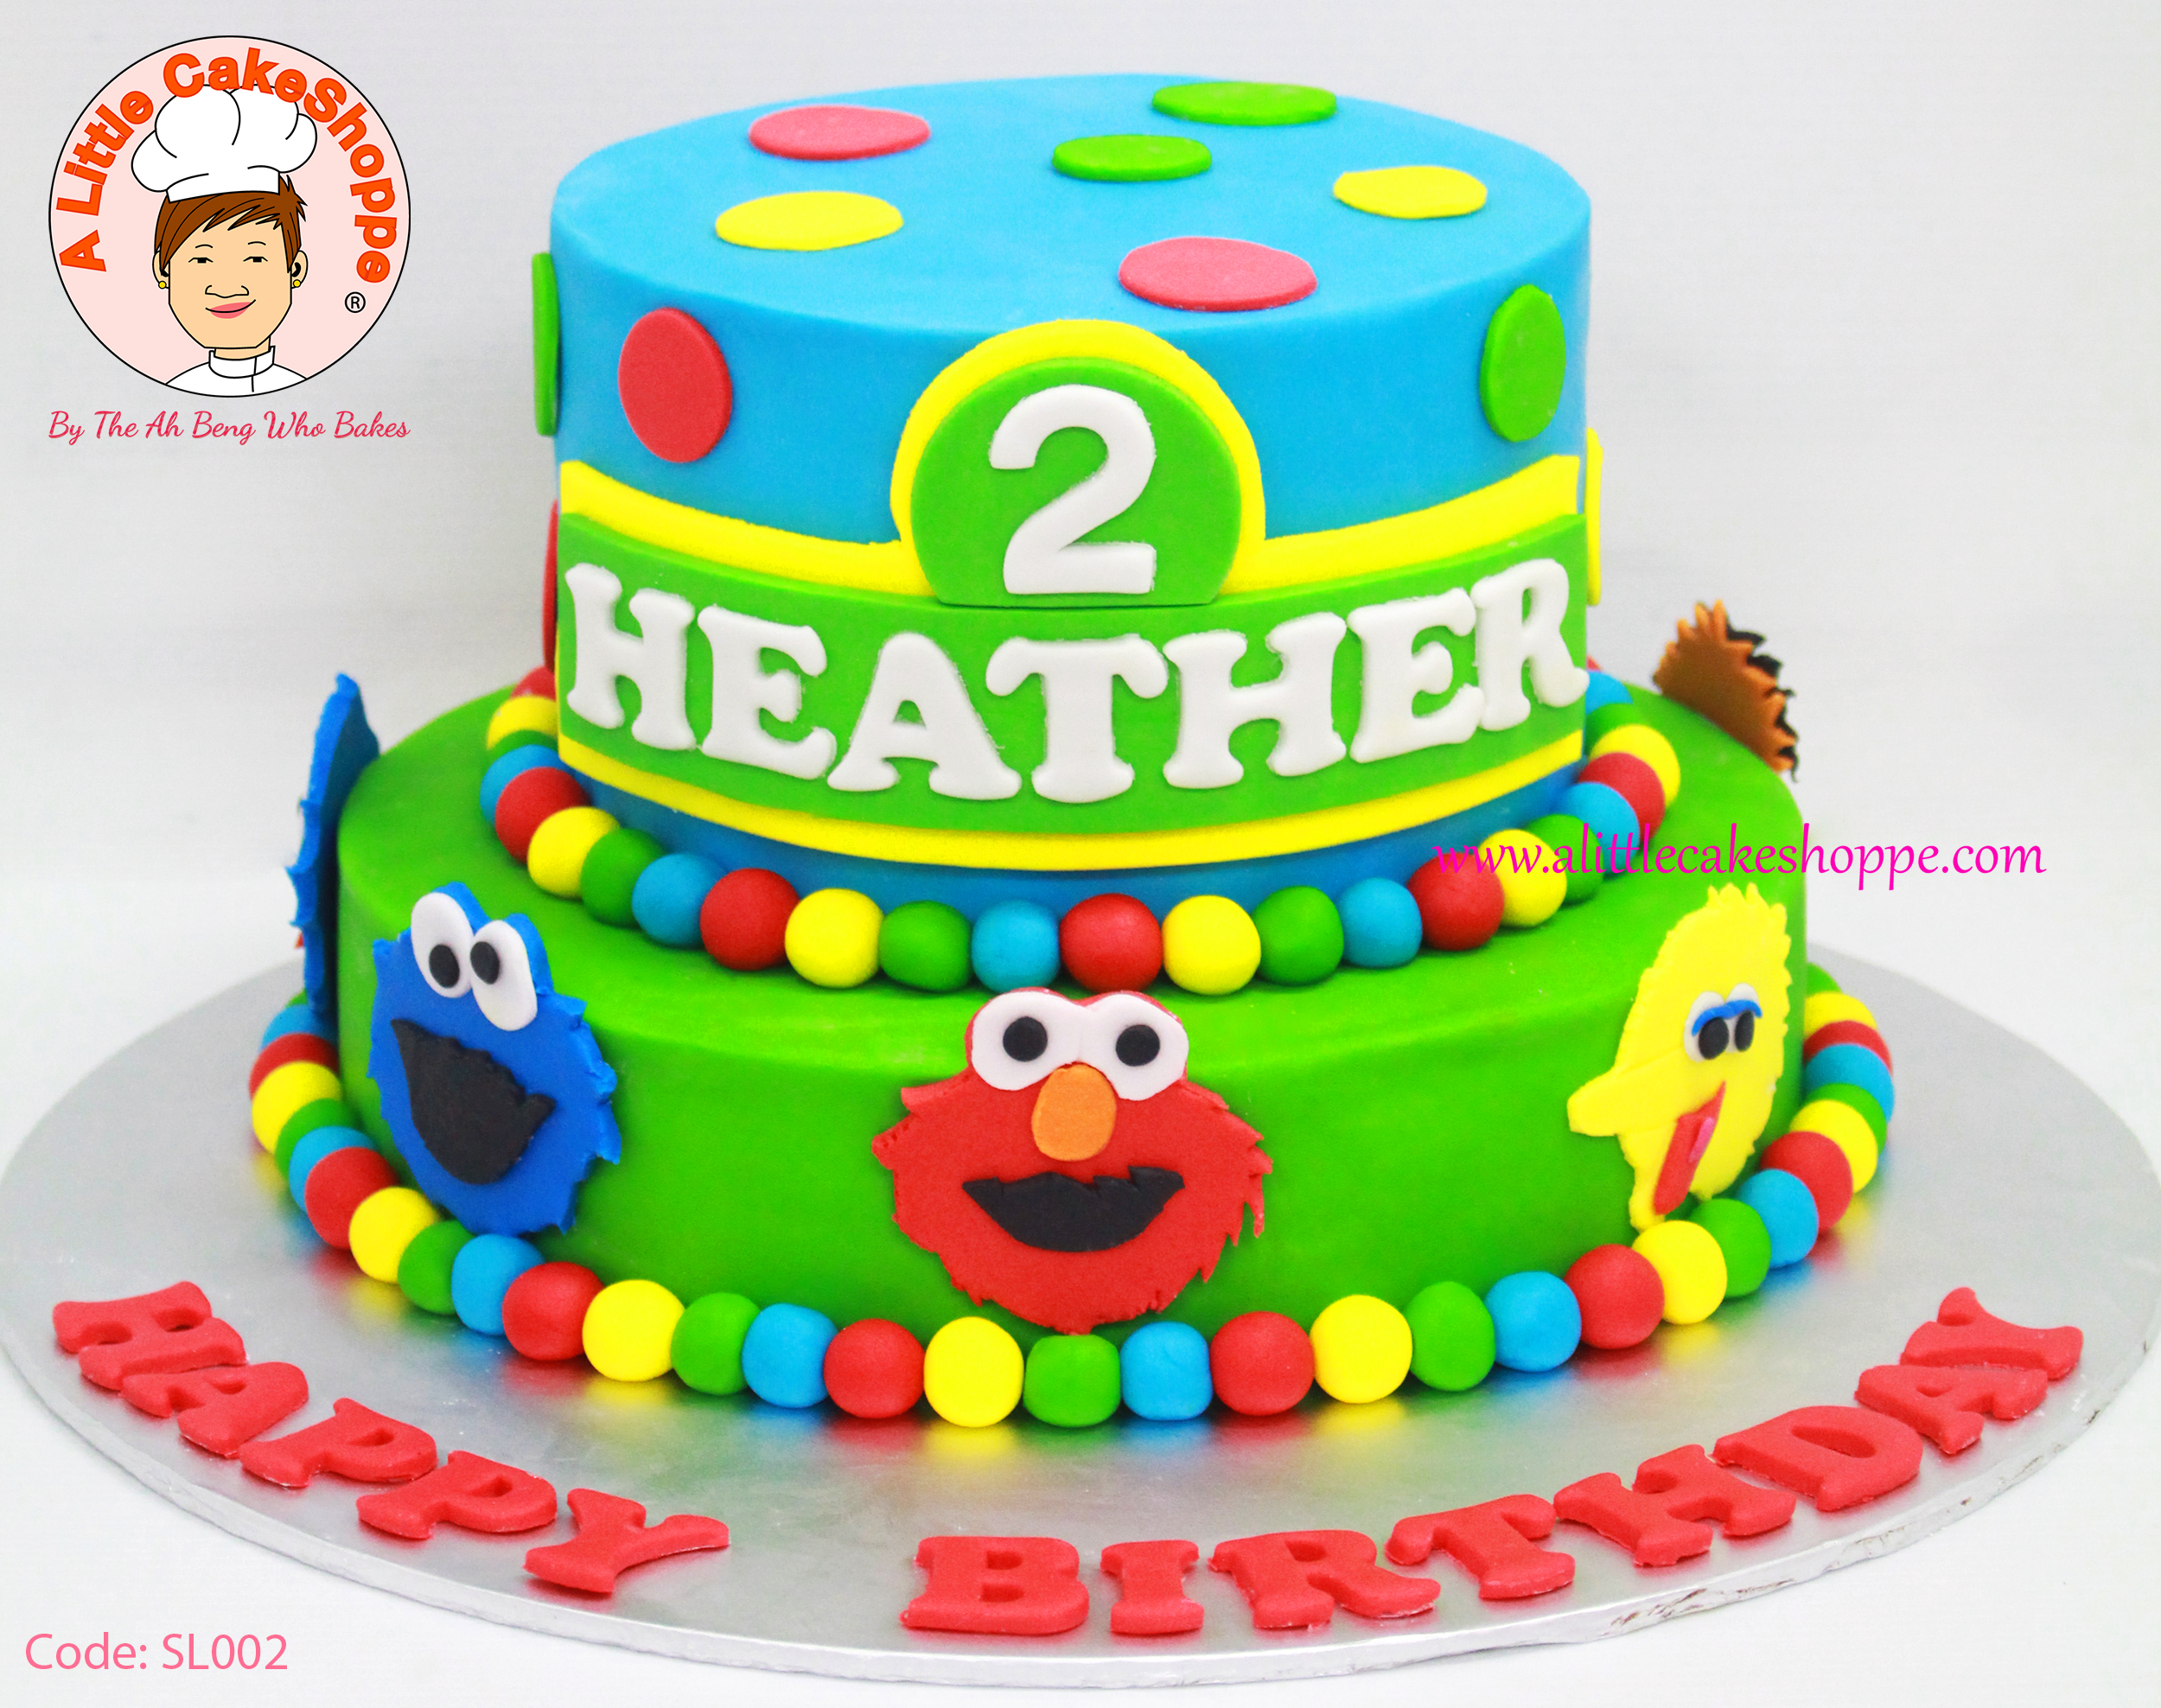 Best Customised Cake Singapore custom cake 2D 3D birthday cake cupcakes desserts wedding corporate events anniversary 1st birthday 21st birthday fondant fresh cream buttercream cakes alittlecakeshoppe a little cake shoppe compliments review singapore bakers SG cakeshop ah beng who bakes sesame street elmo cookie monster